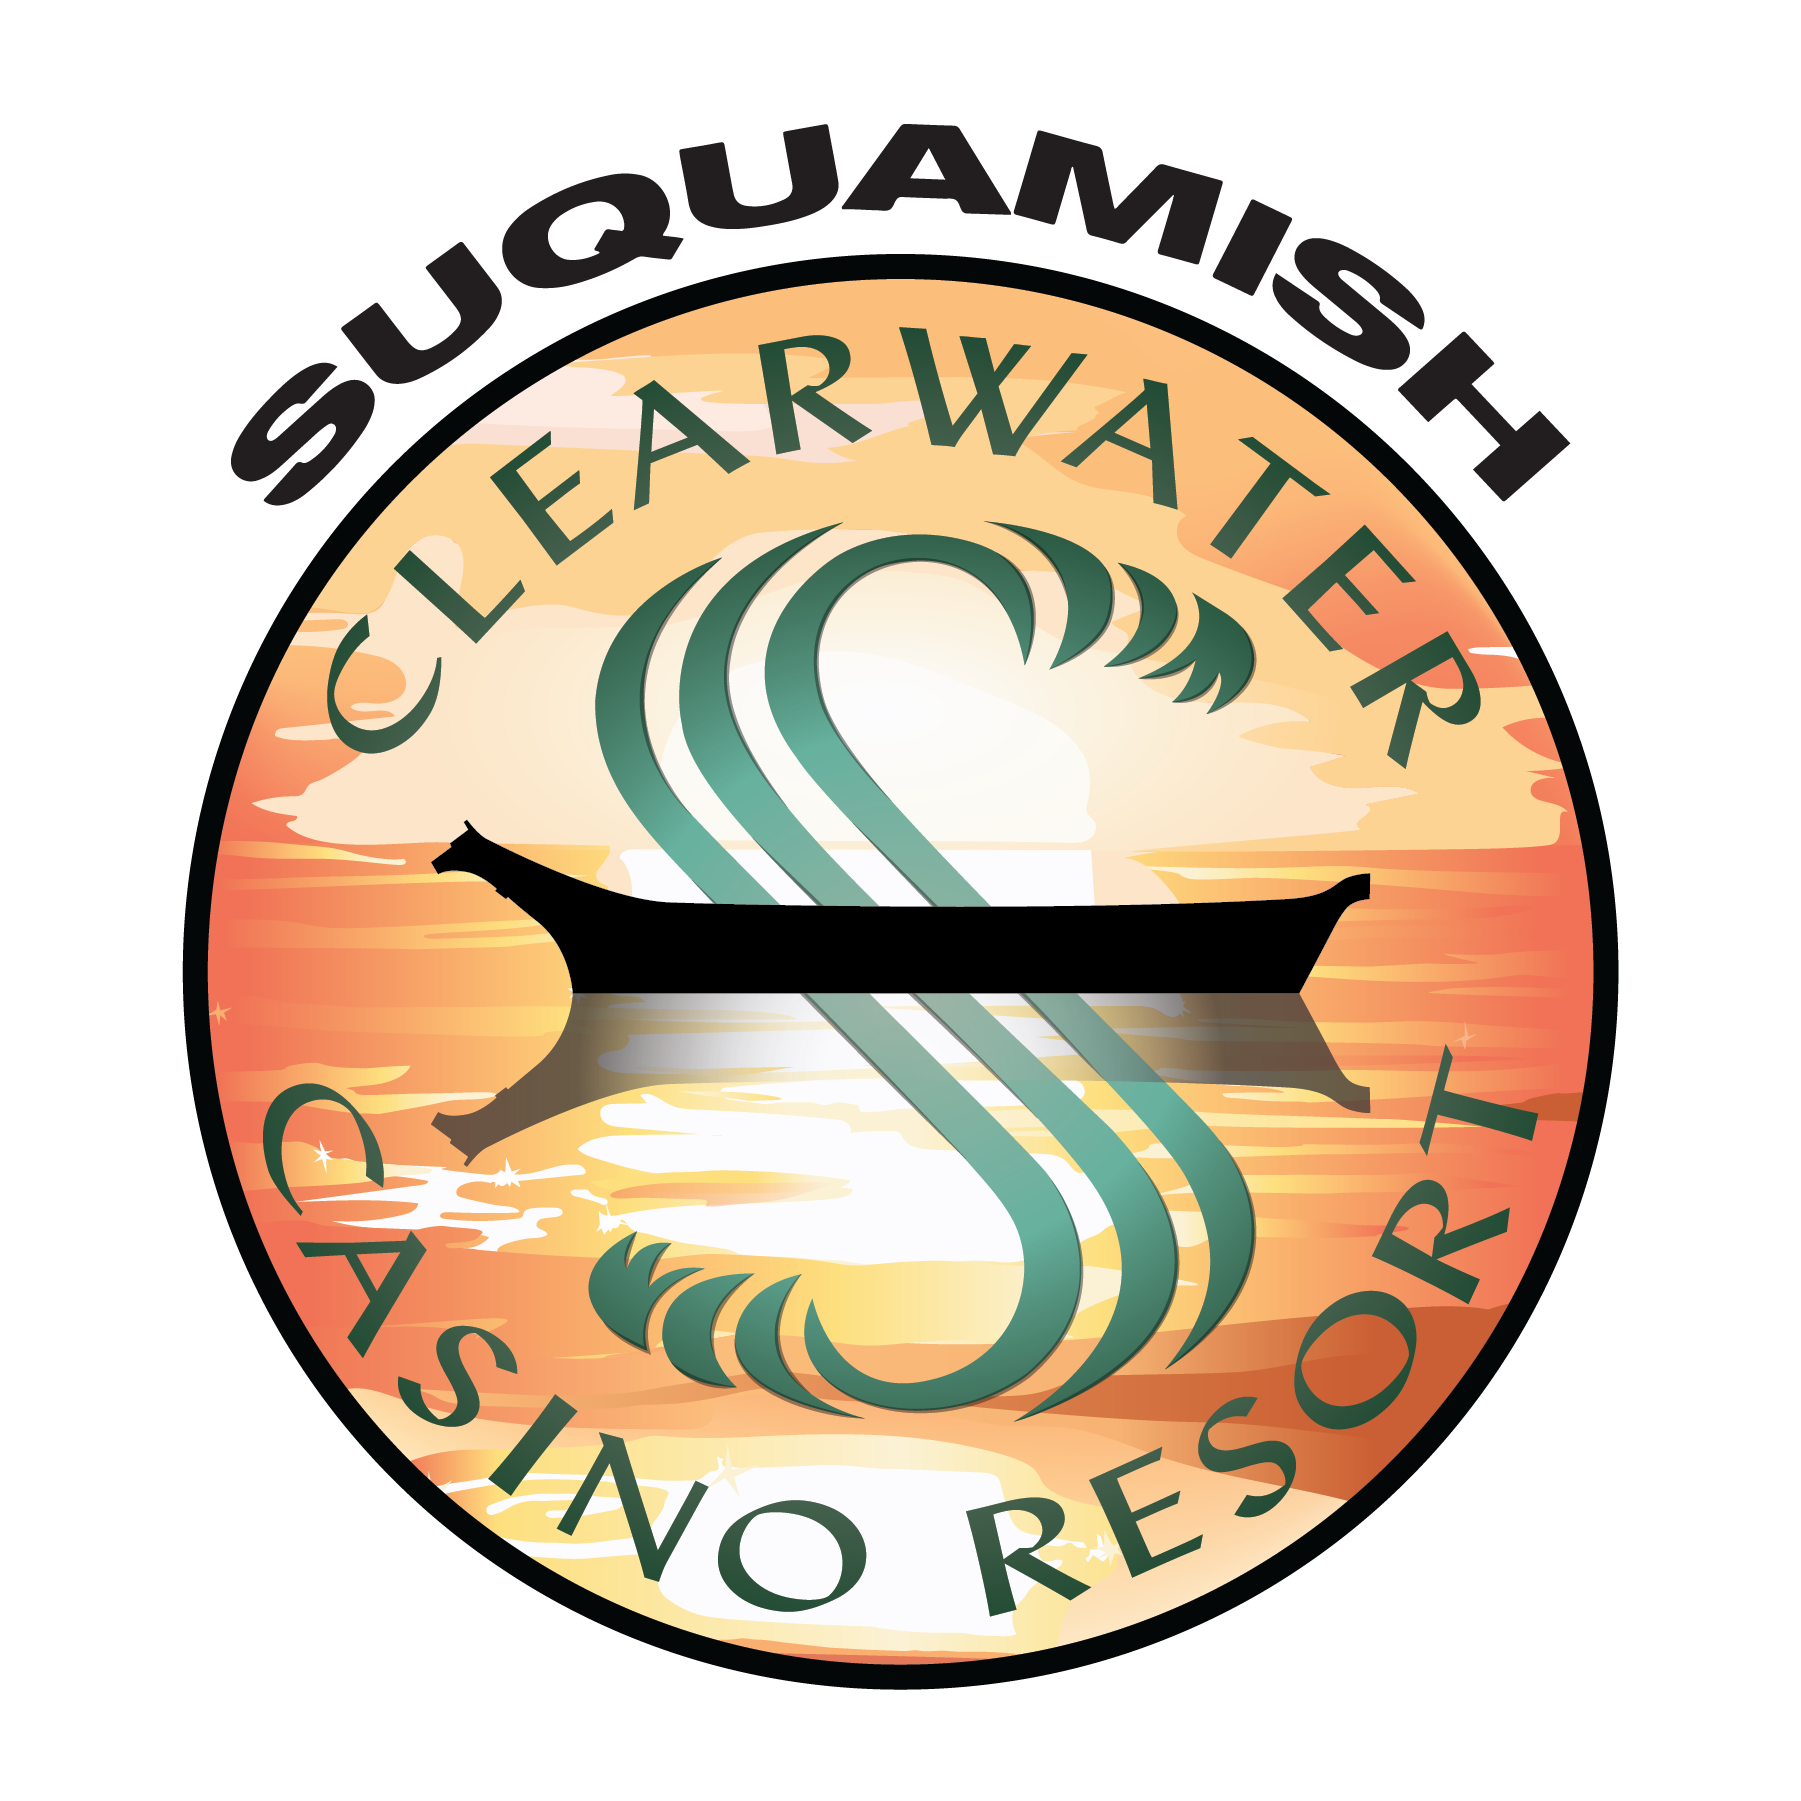 Suquamish Clearwater Casino Resort logo. A gold circle with the word Suquamish above. Inside the circle, along the top arc, it says Clearwater. The bottom arc says Casino Resort. In the middle of the circle is a simple image of a black canoe on water with a silhouette. Woven through the canoe is the letter S.